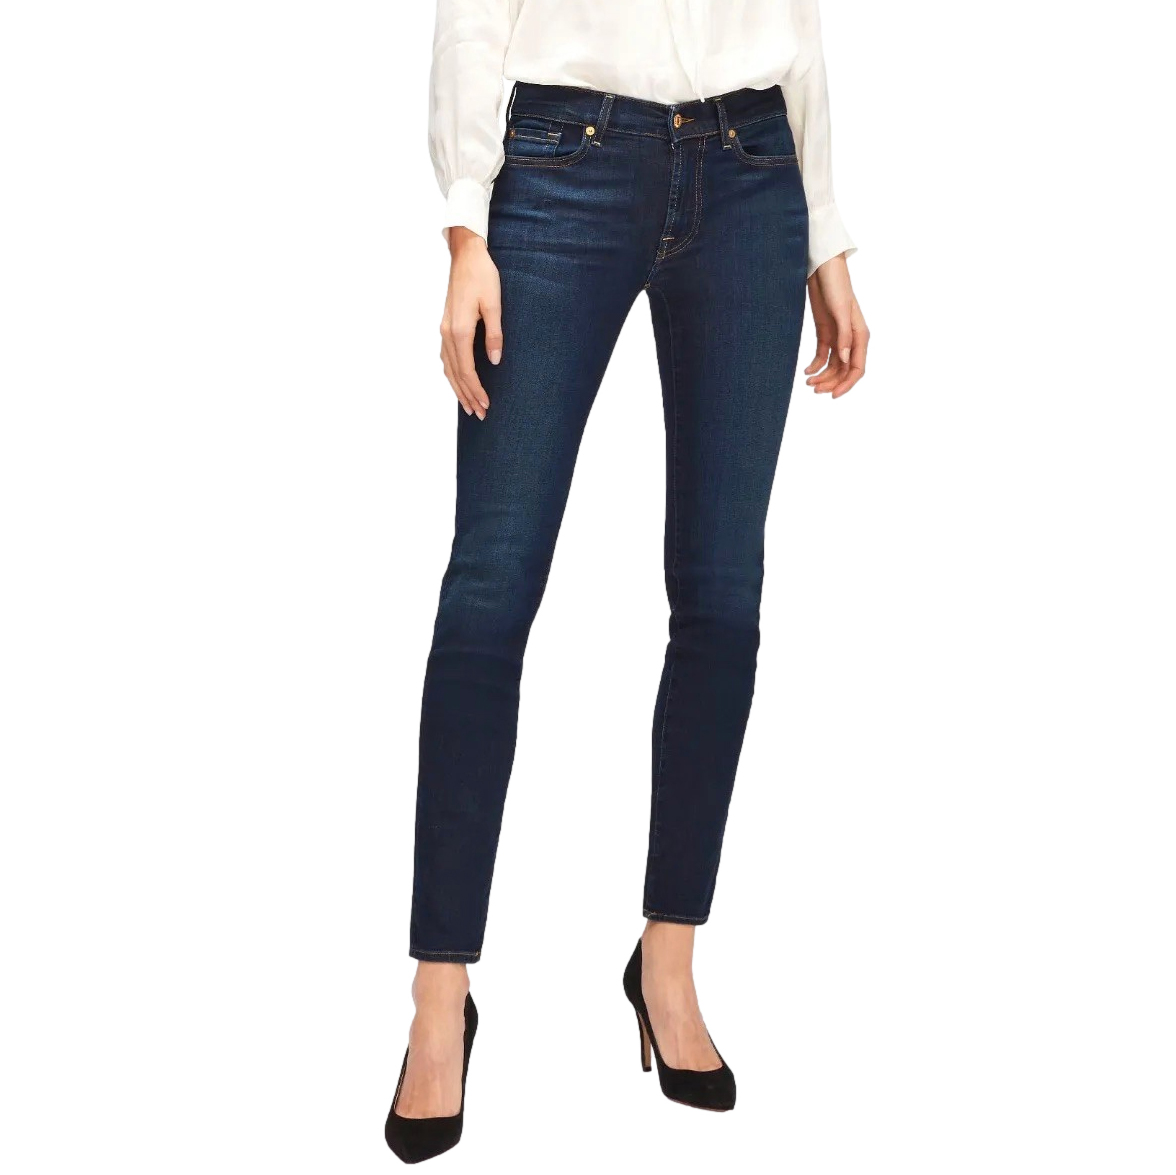 7 For All Mankind Illusion Luxe Blue Jeans